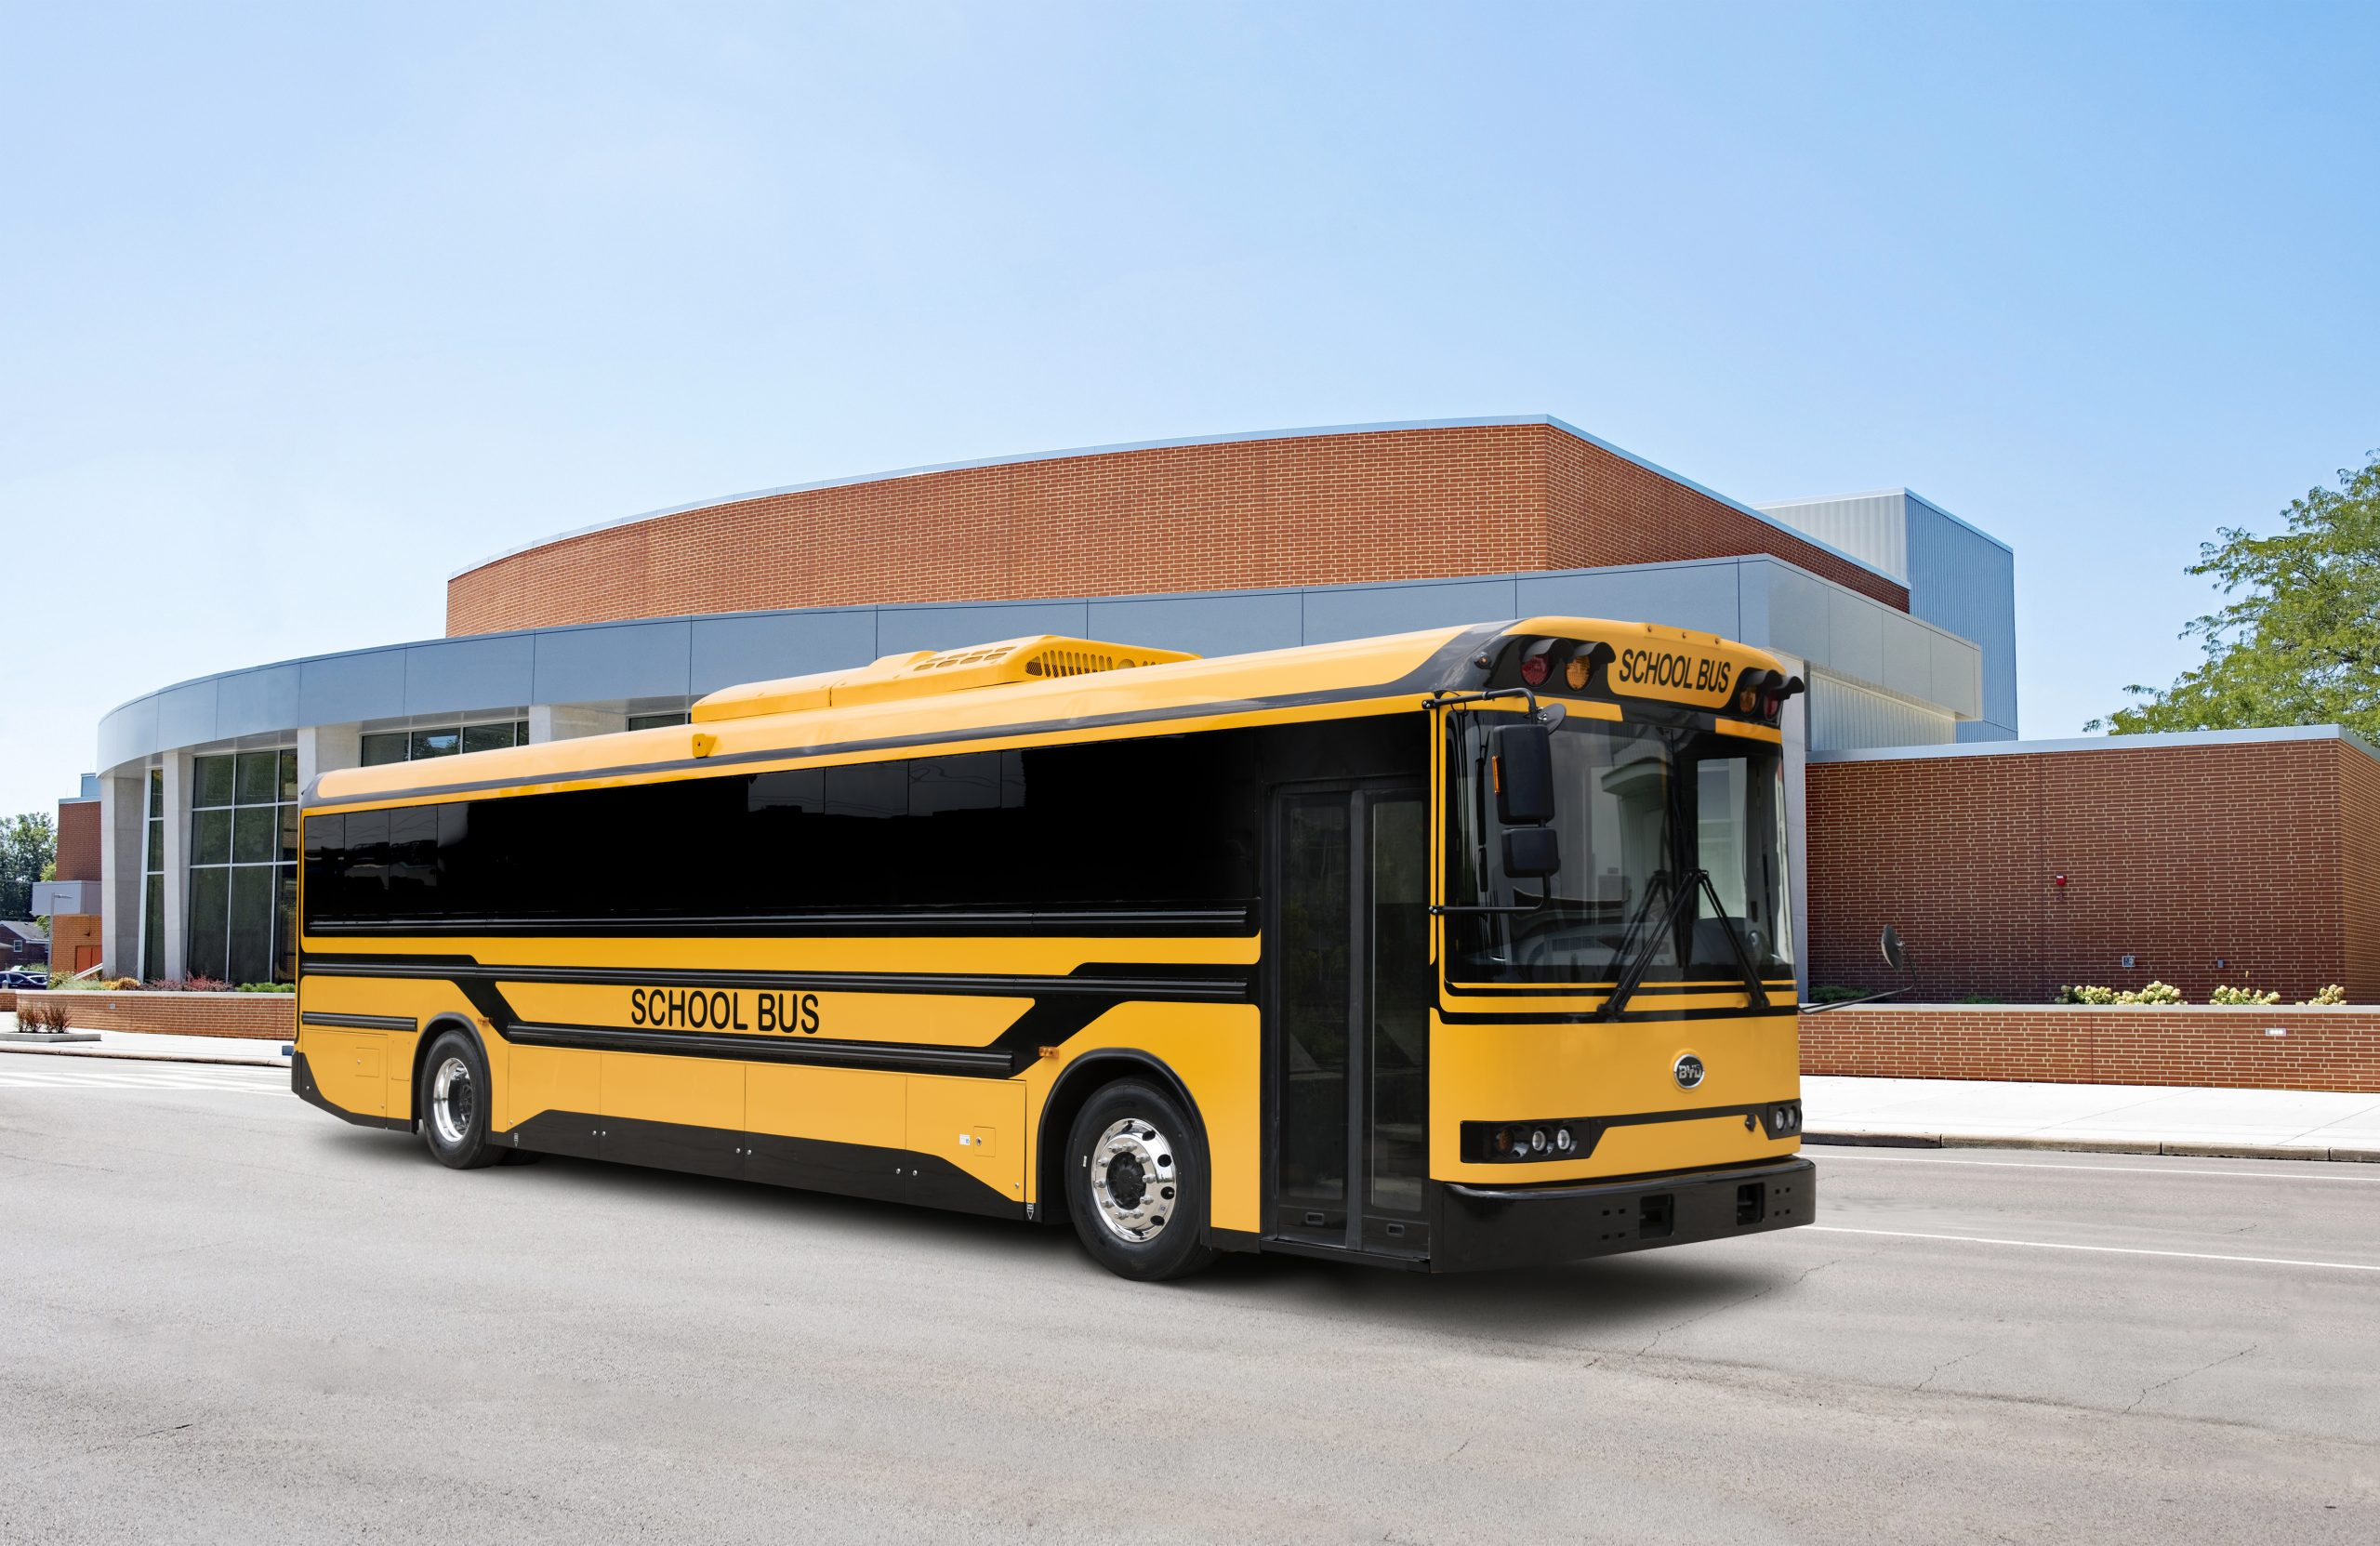 BYD has unveiled an electric school bus with bi-directional charging